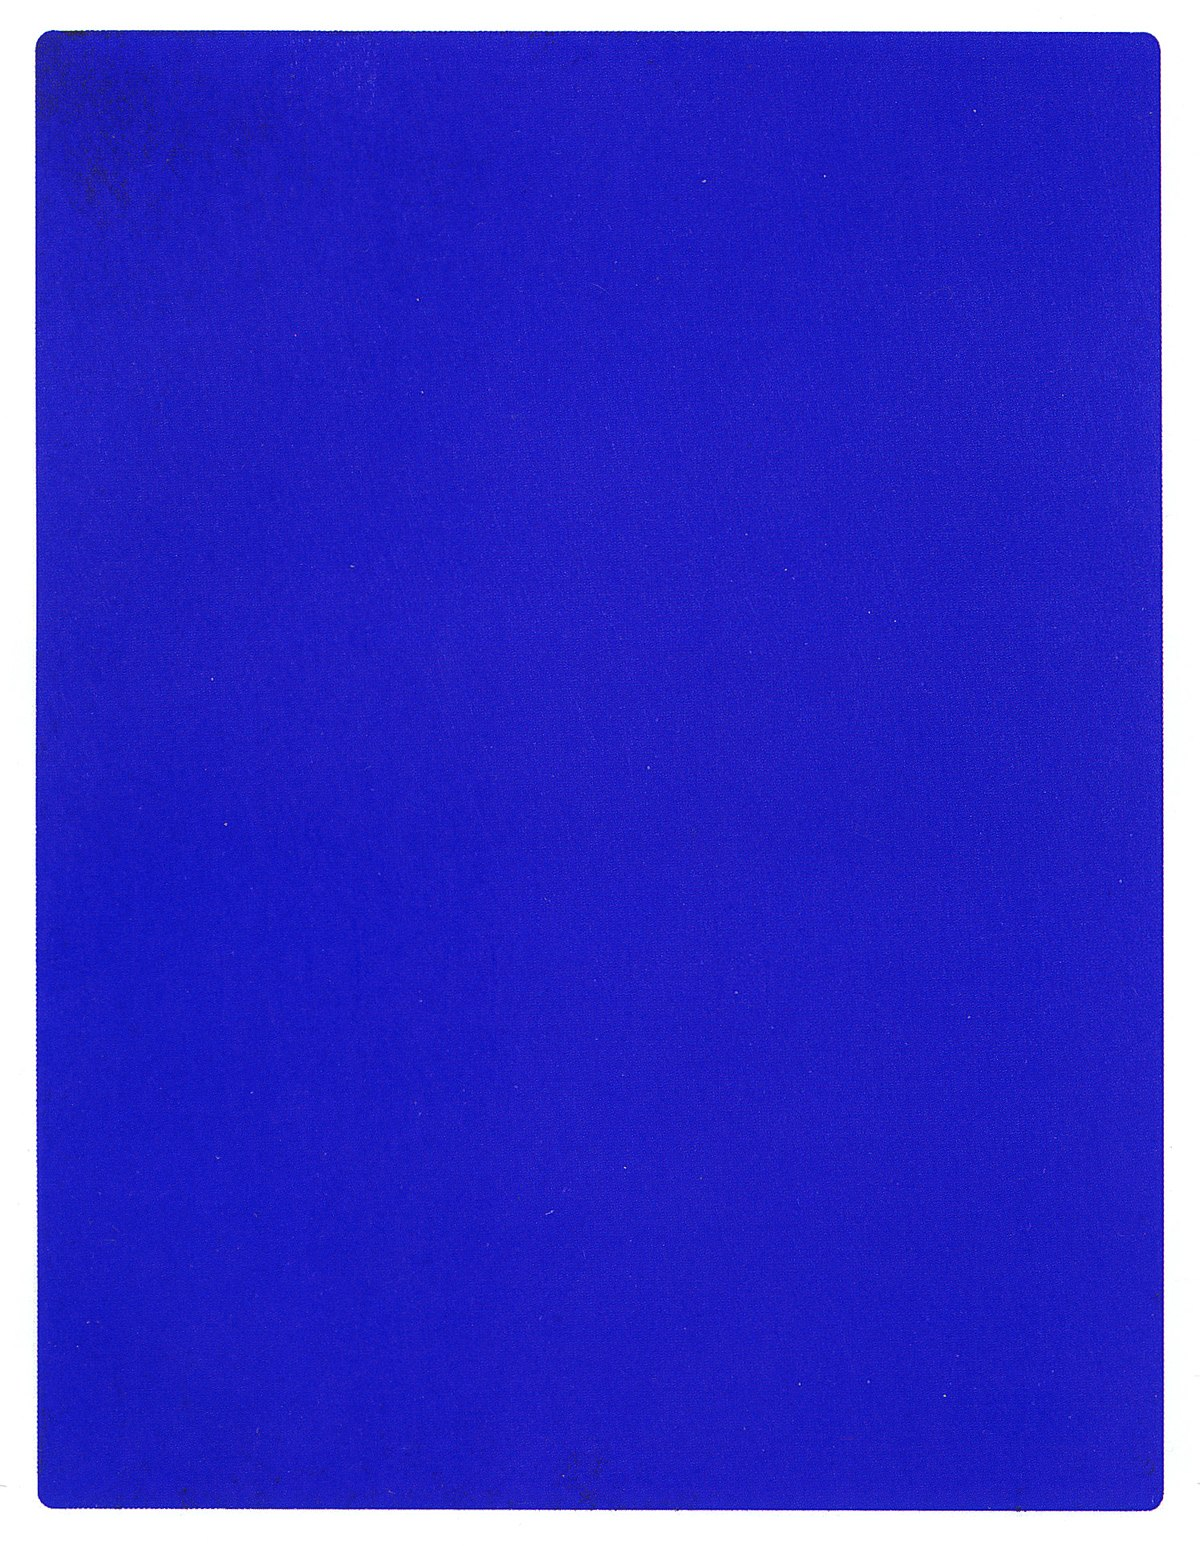 International Klein Blue Wikipedia